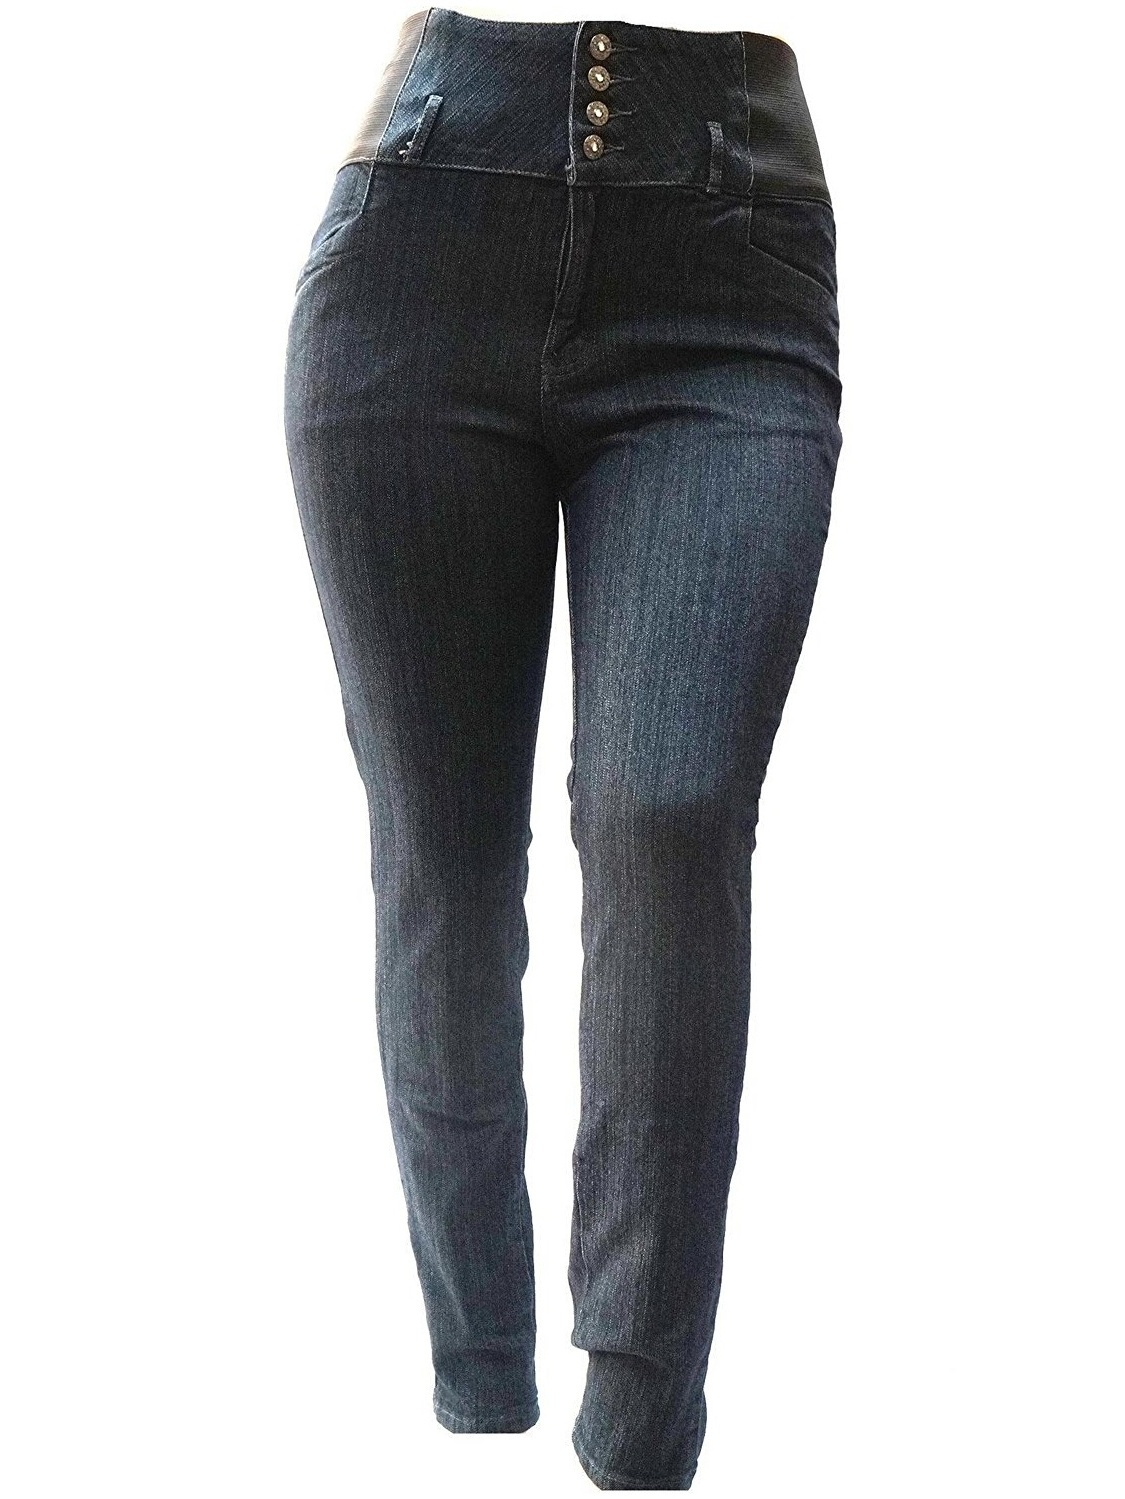 Pasion BLA Premium Womens Plus Size Stretch Pregnancy Maternity BLACK Denim Jeans Pants